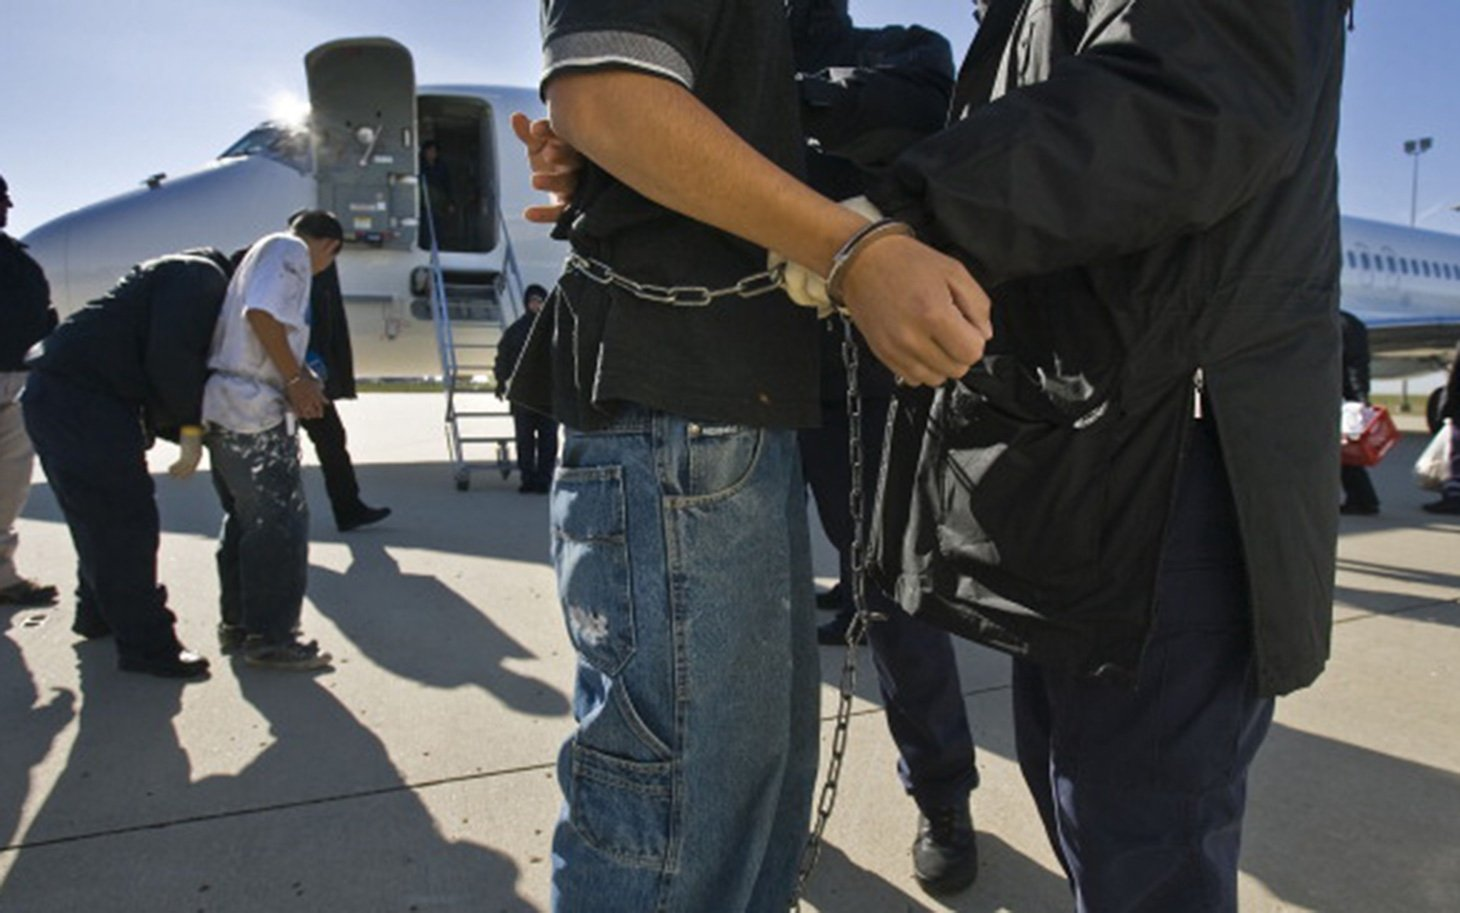 How Many Illegal Immigrants Have Committed Violent Felonies Thats One Statistic Our Government Doesnt Track